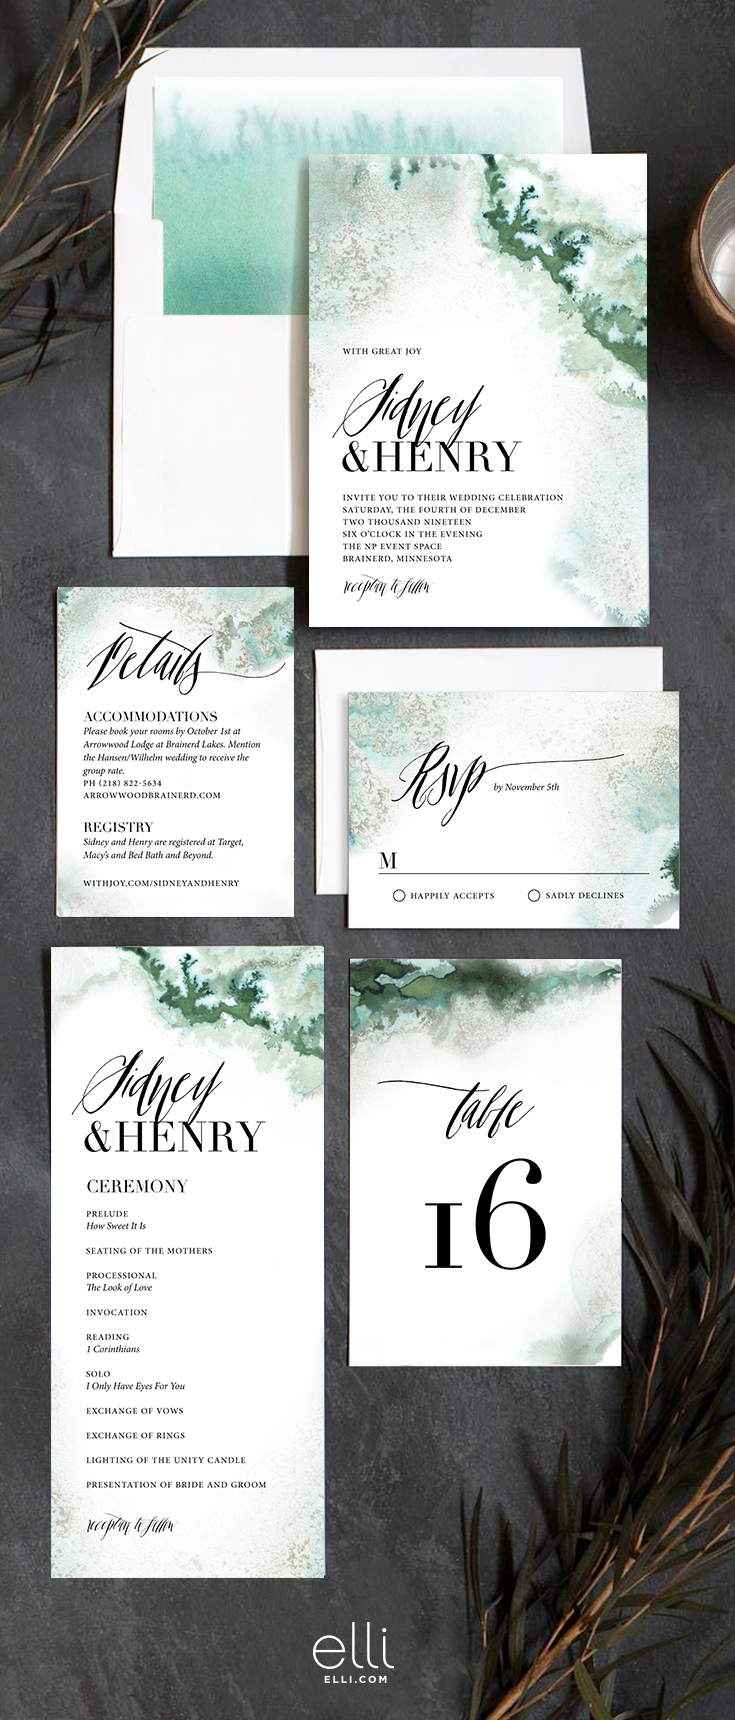 Painted Ethereal wedding invitation suite with natural earthy ...